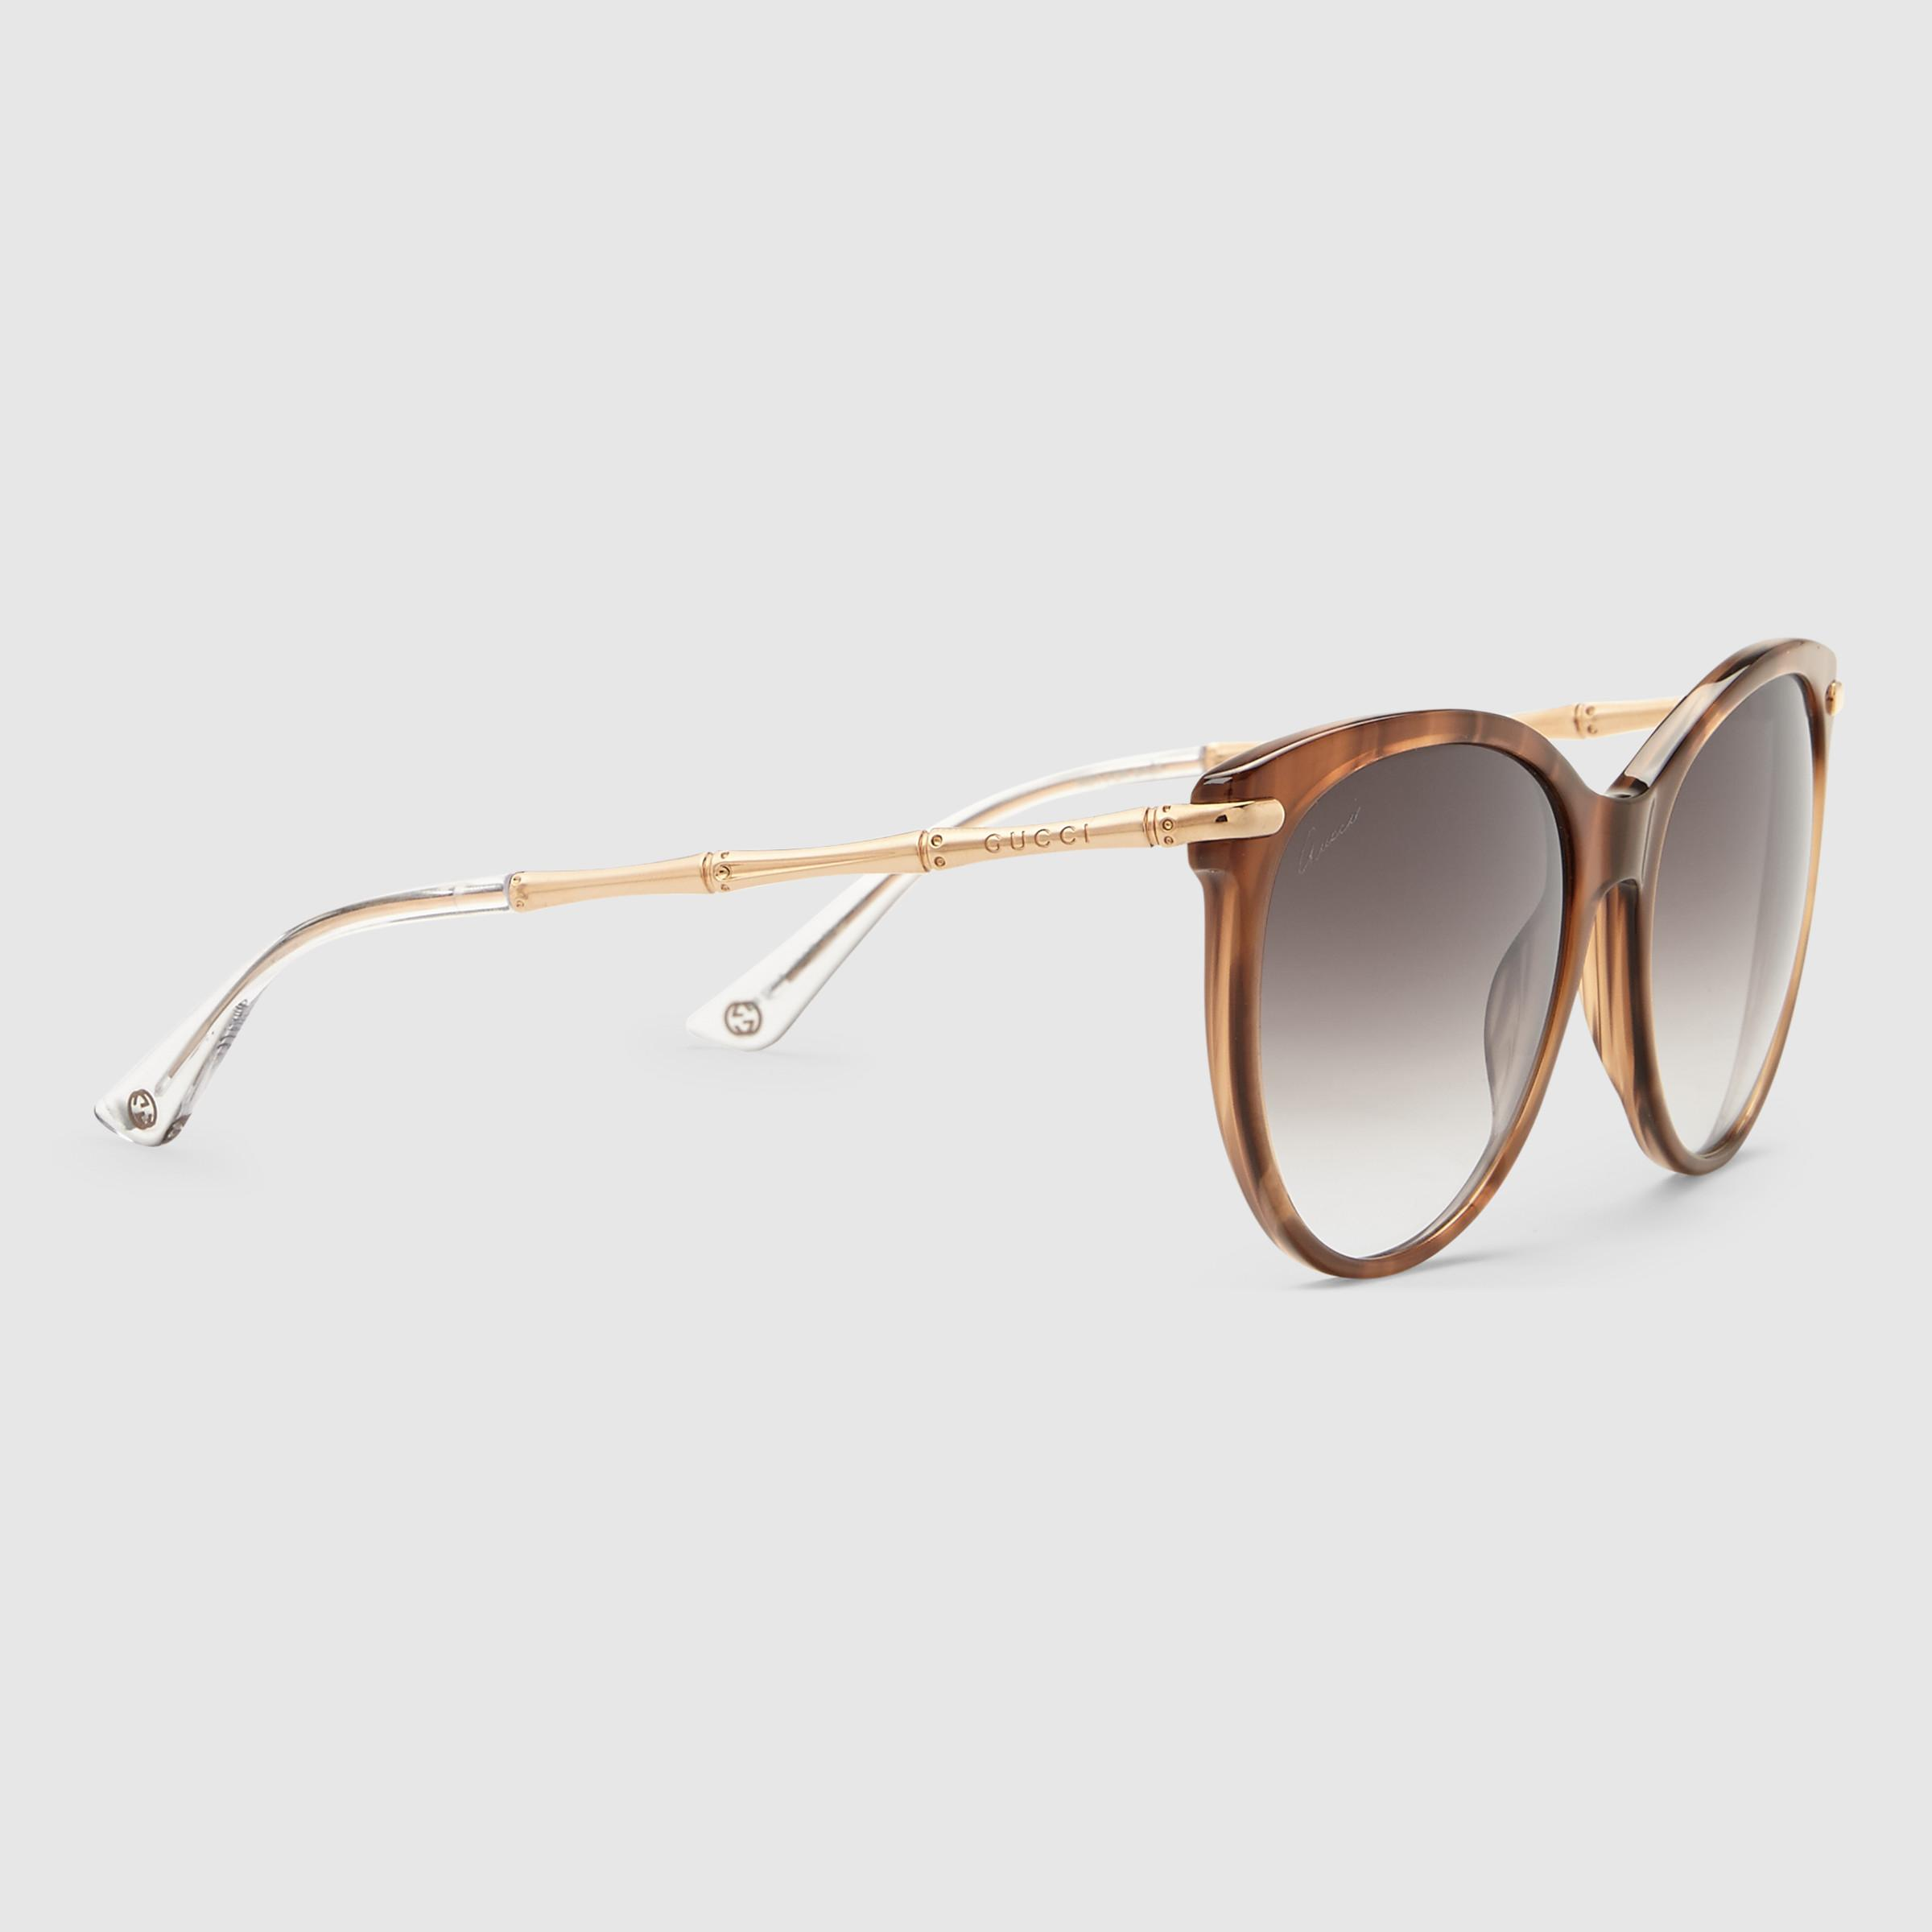 f3bc4712019 Lyst - Gucci Cat Eye Sunglasses With Metal Bamboo Temples in Red